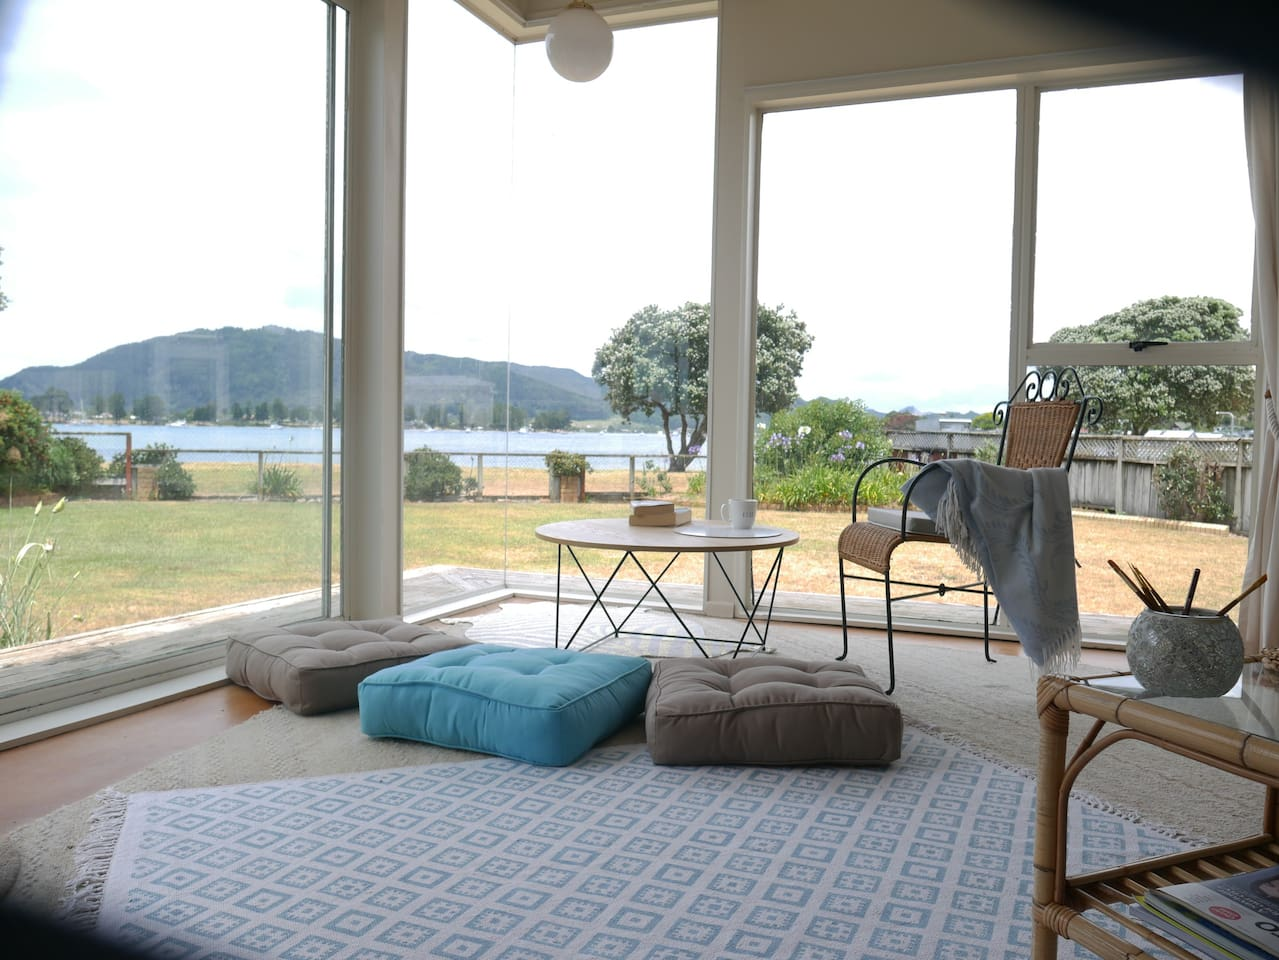 Tairua Airbnb lounge with view of the ocean